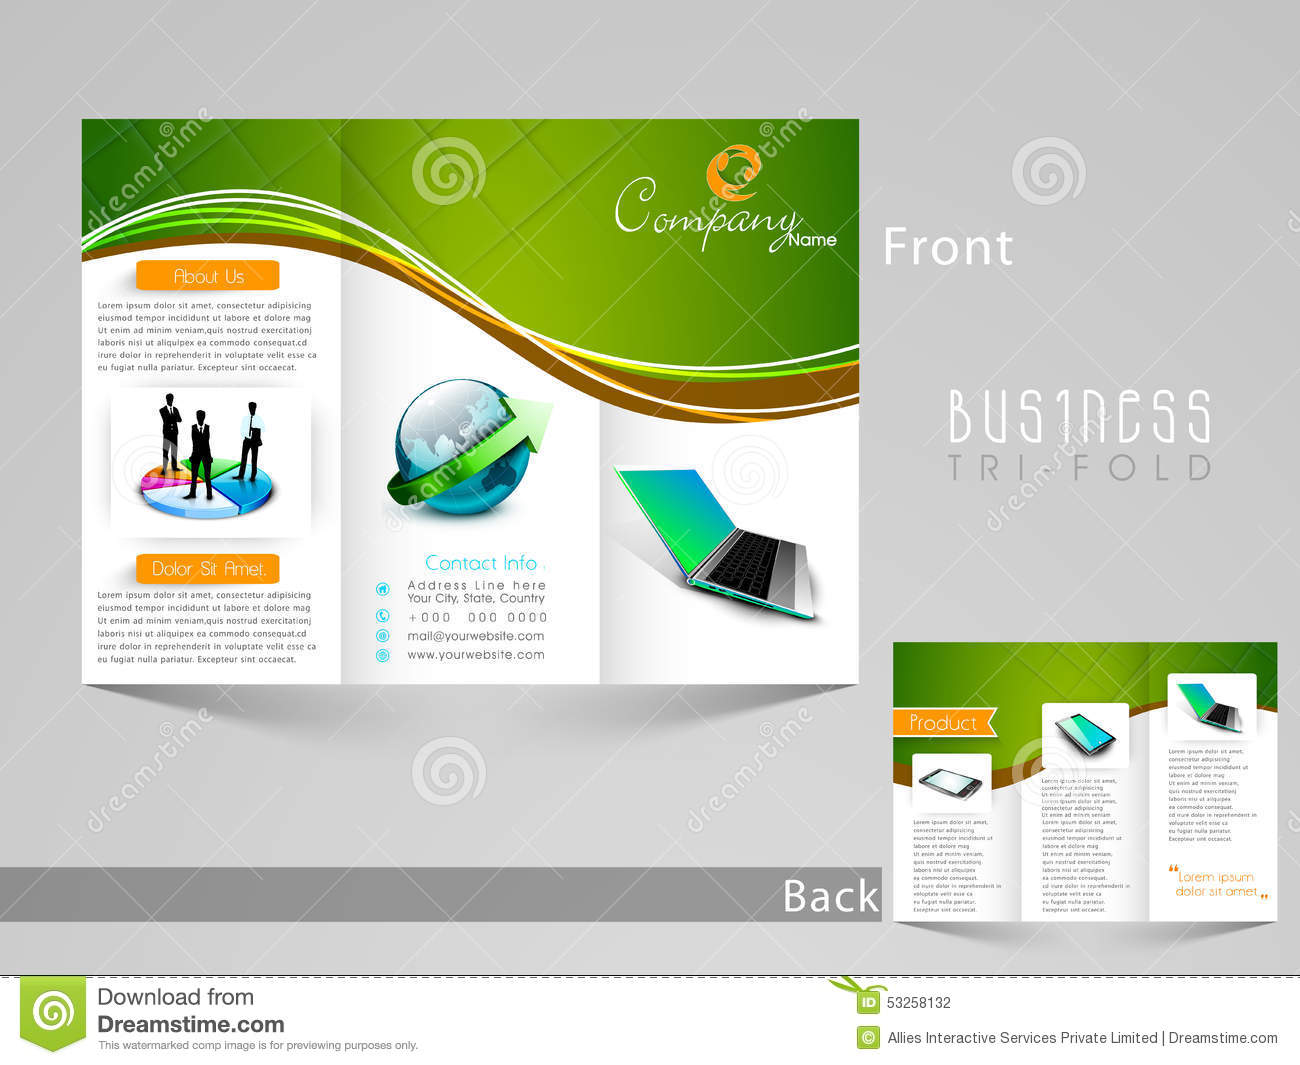 Stylish tri fold template brochure or flyer design stock for Professional brochure design templates